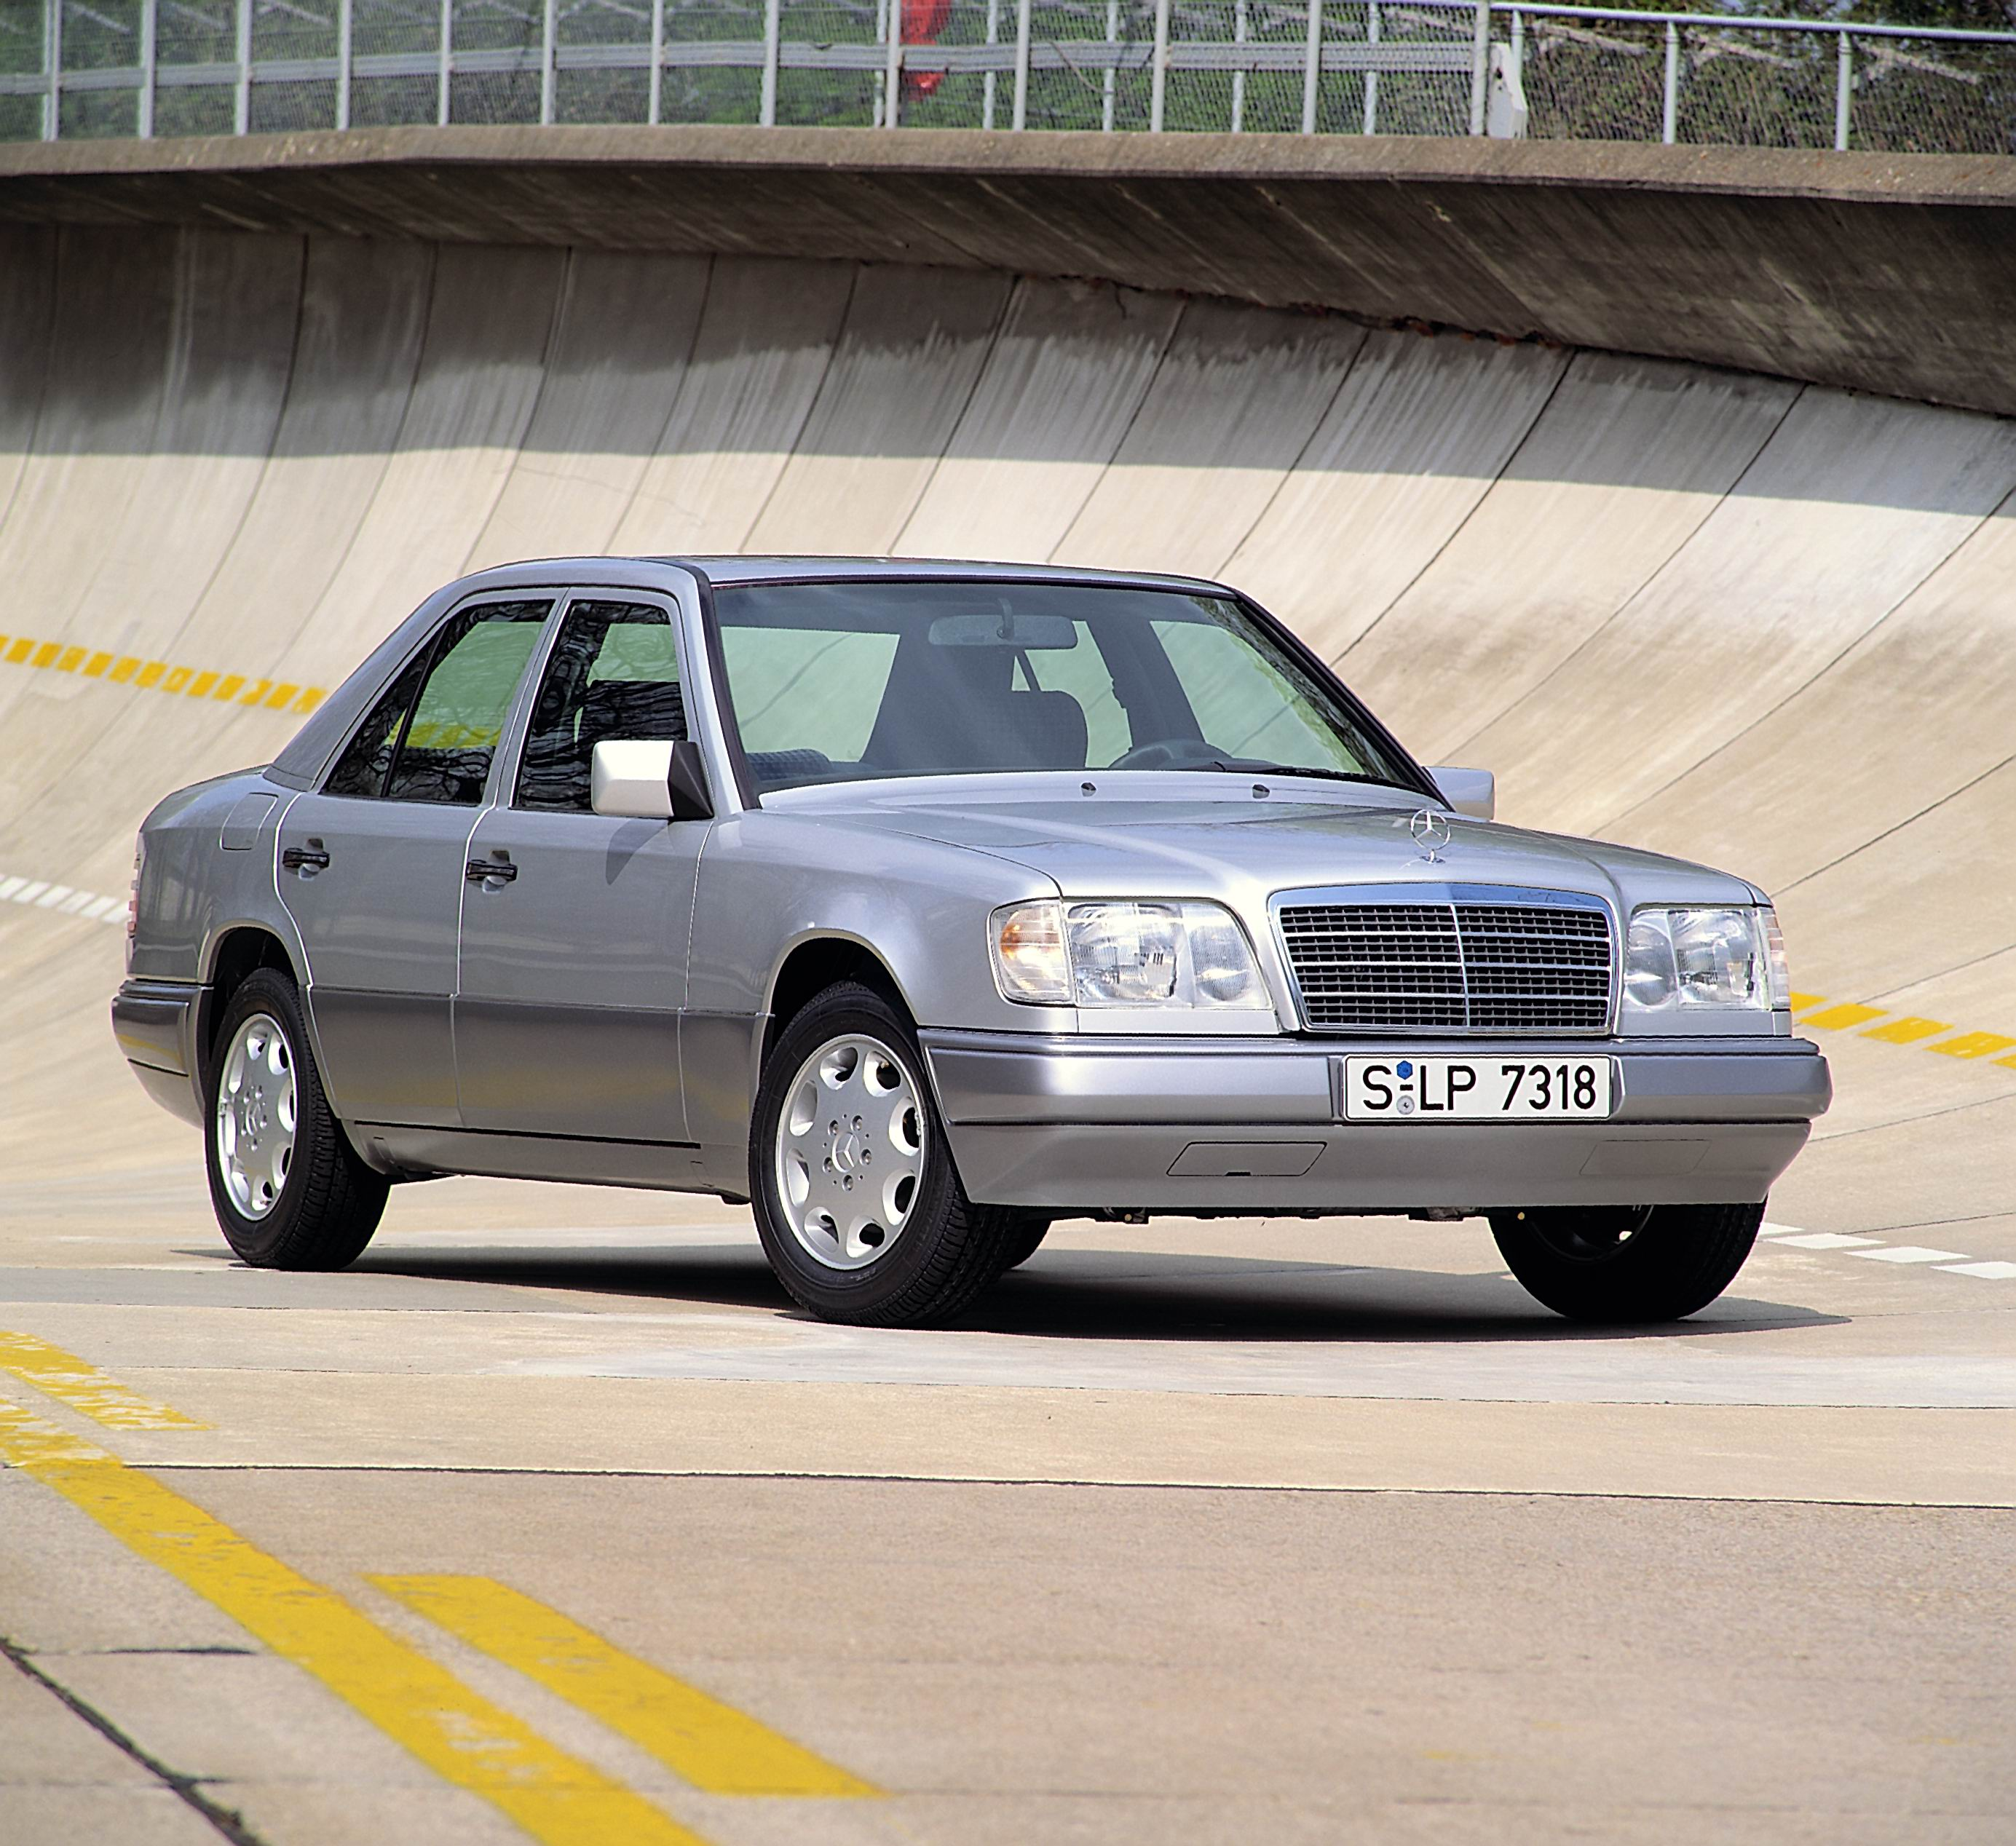 W124 mercedes-benz, mercedes-benz, mercedes, benz, w124, e class, german, luxury car, luxury, motoring, automotive, drivetribe, lewis kingston, calssic car, retro car, classic, retro, w123